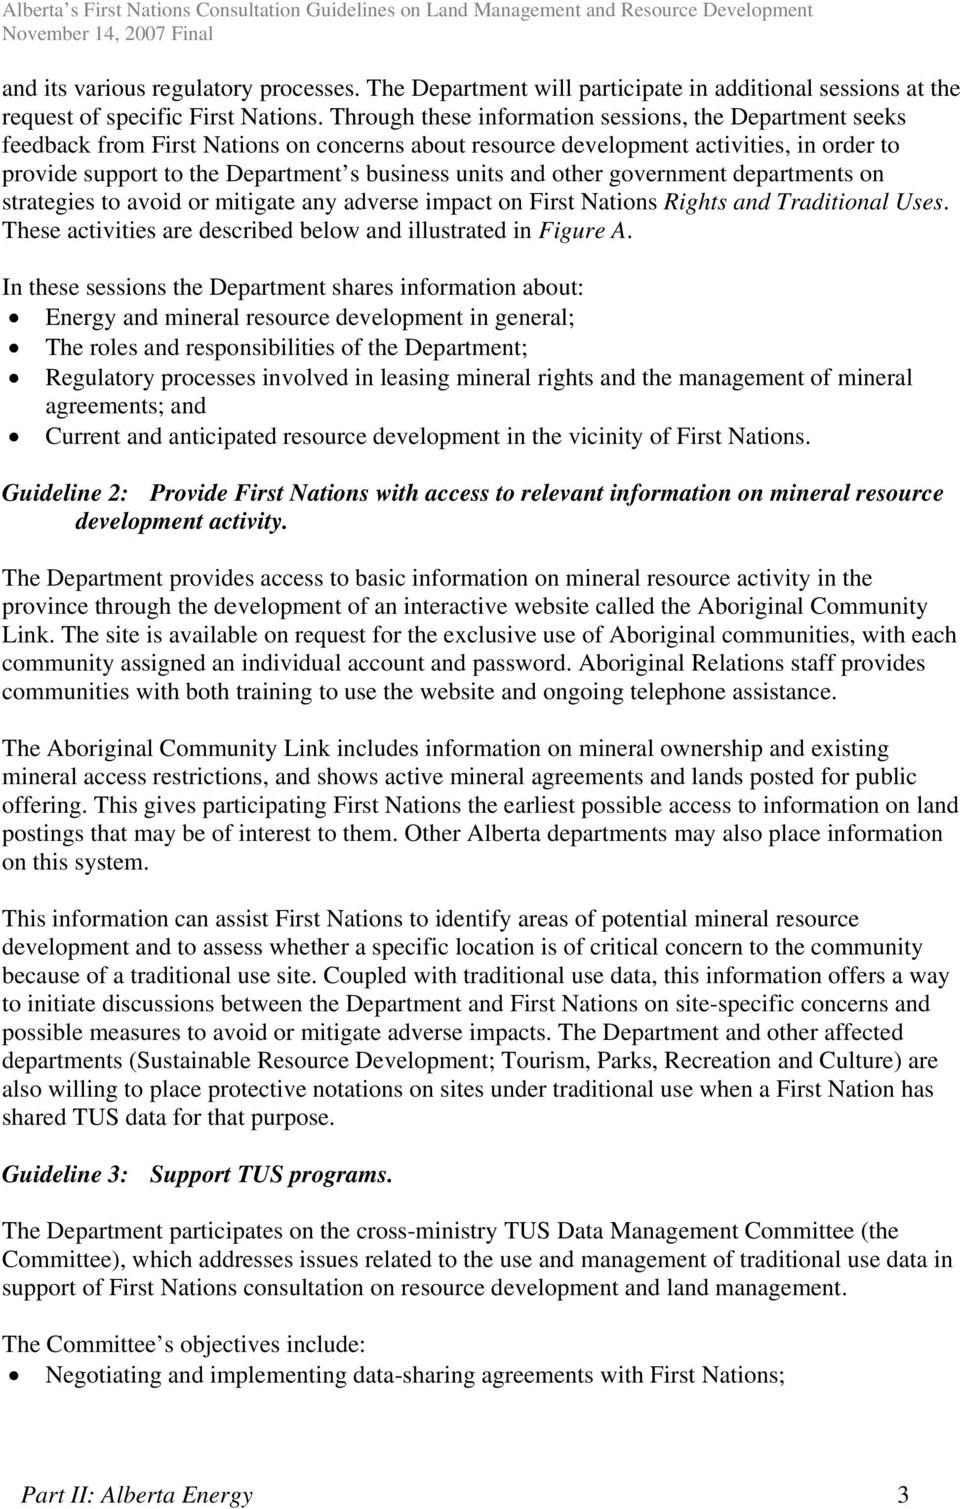 and other government departments on strategies to avoid or mitigate any adverse impact on First Nations Rights and Traditional Uses. These activities are described below and illustrated in Figure A.